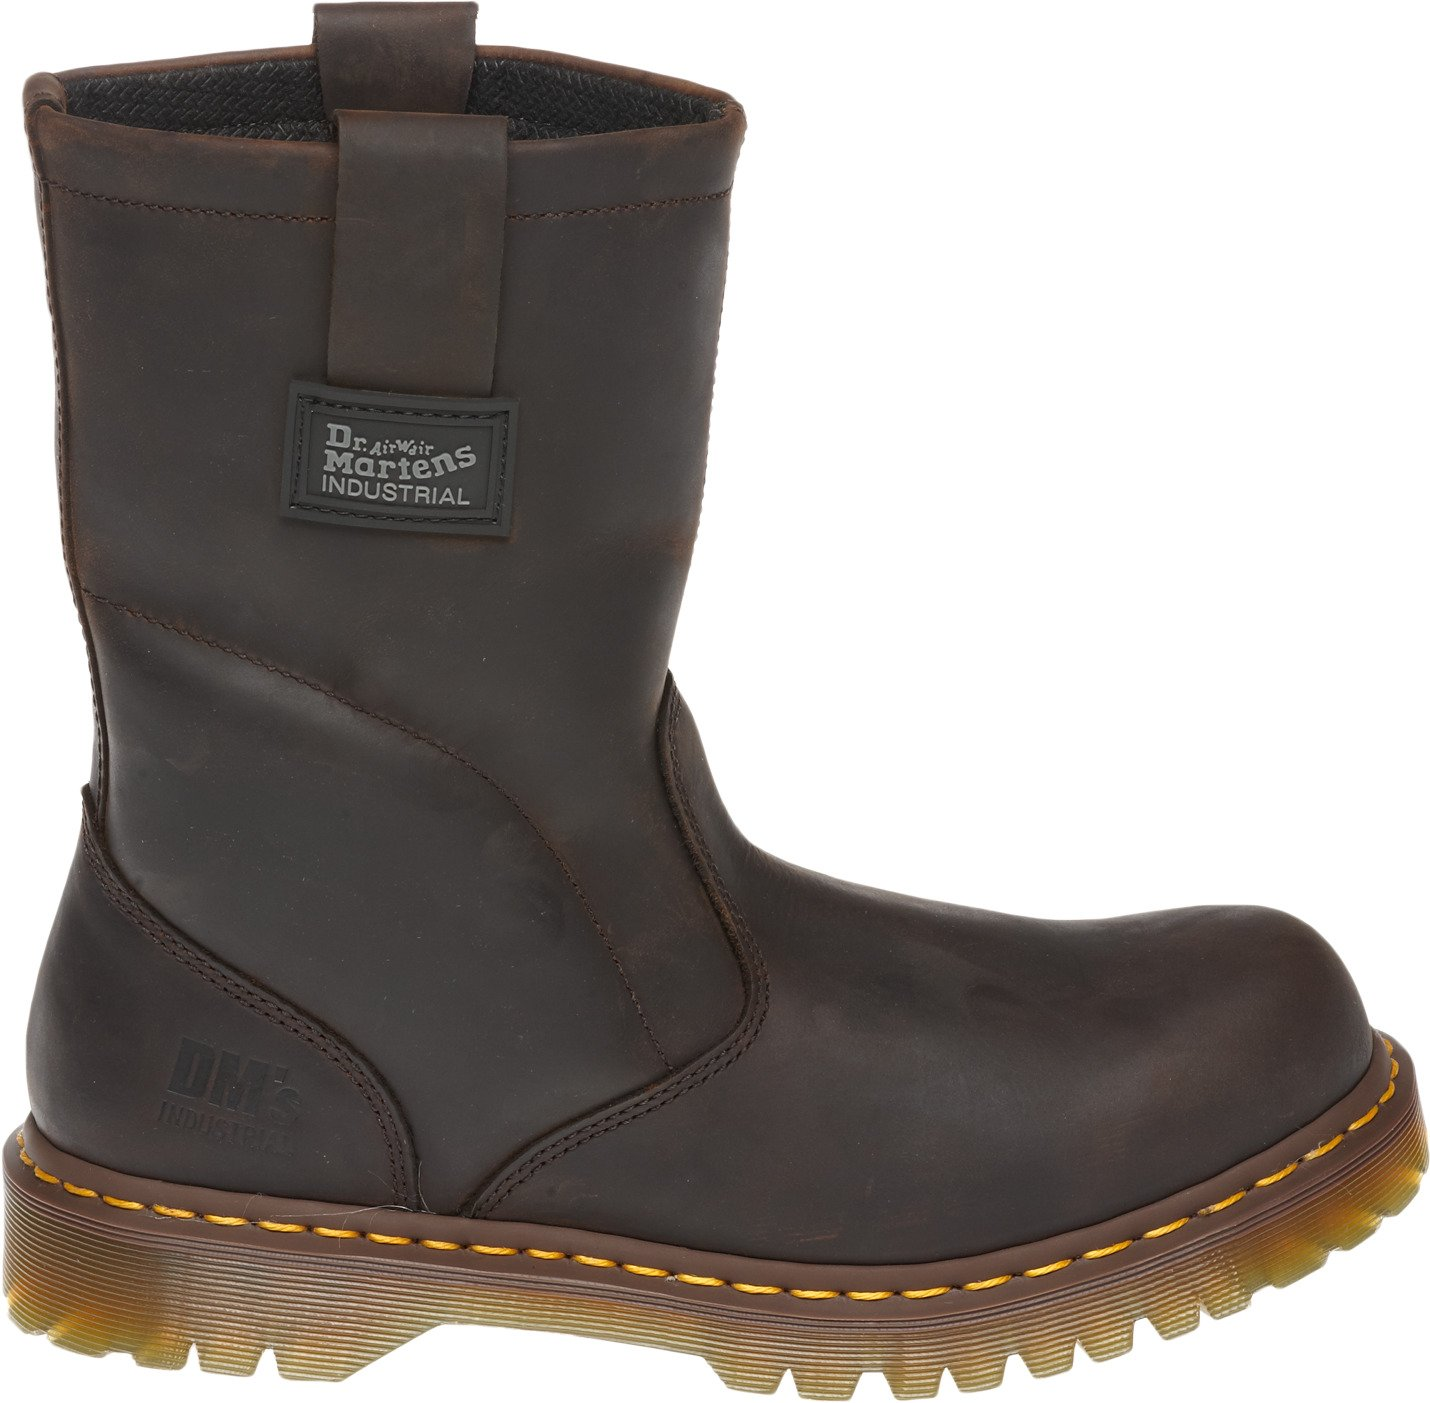 2c48159a2a7 Dr. Martens Men's Industrial EH Wellington Work Boots | Academy